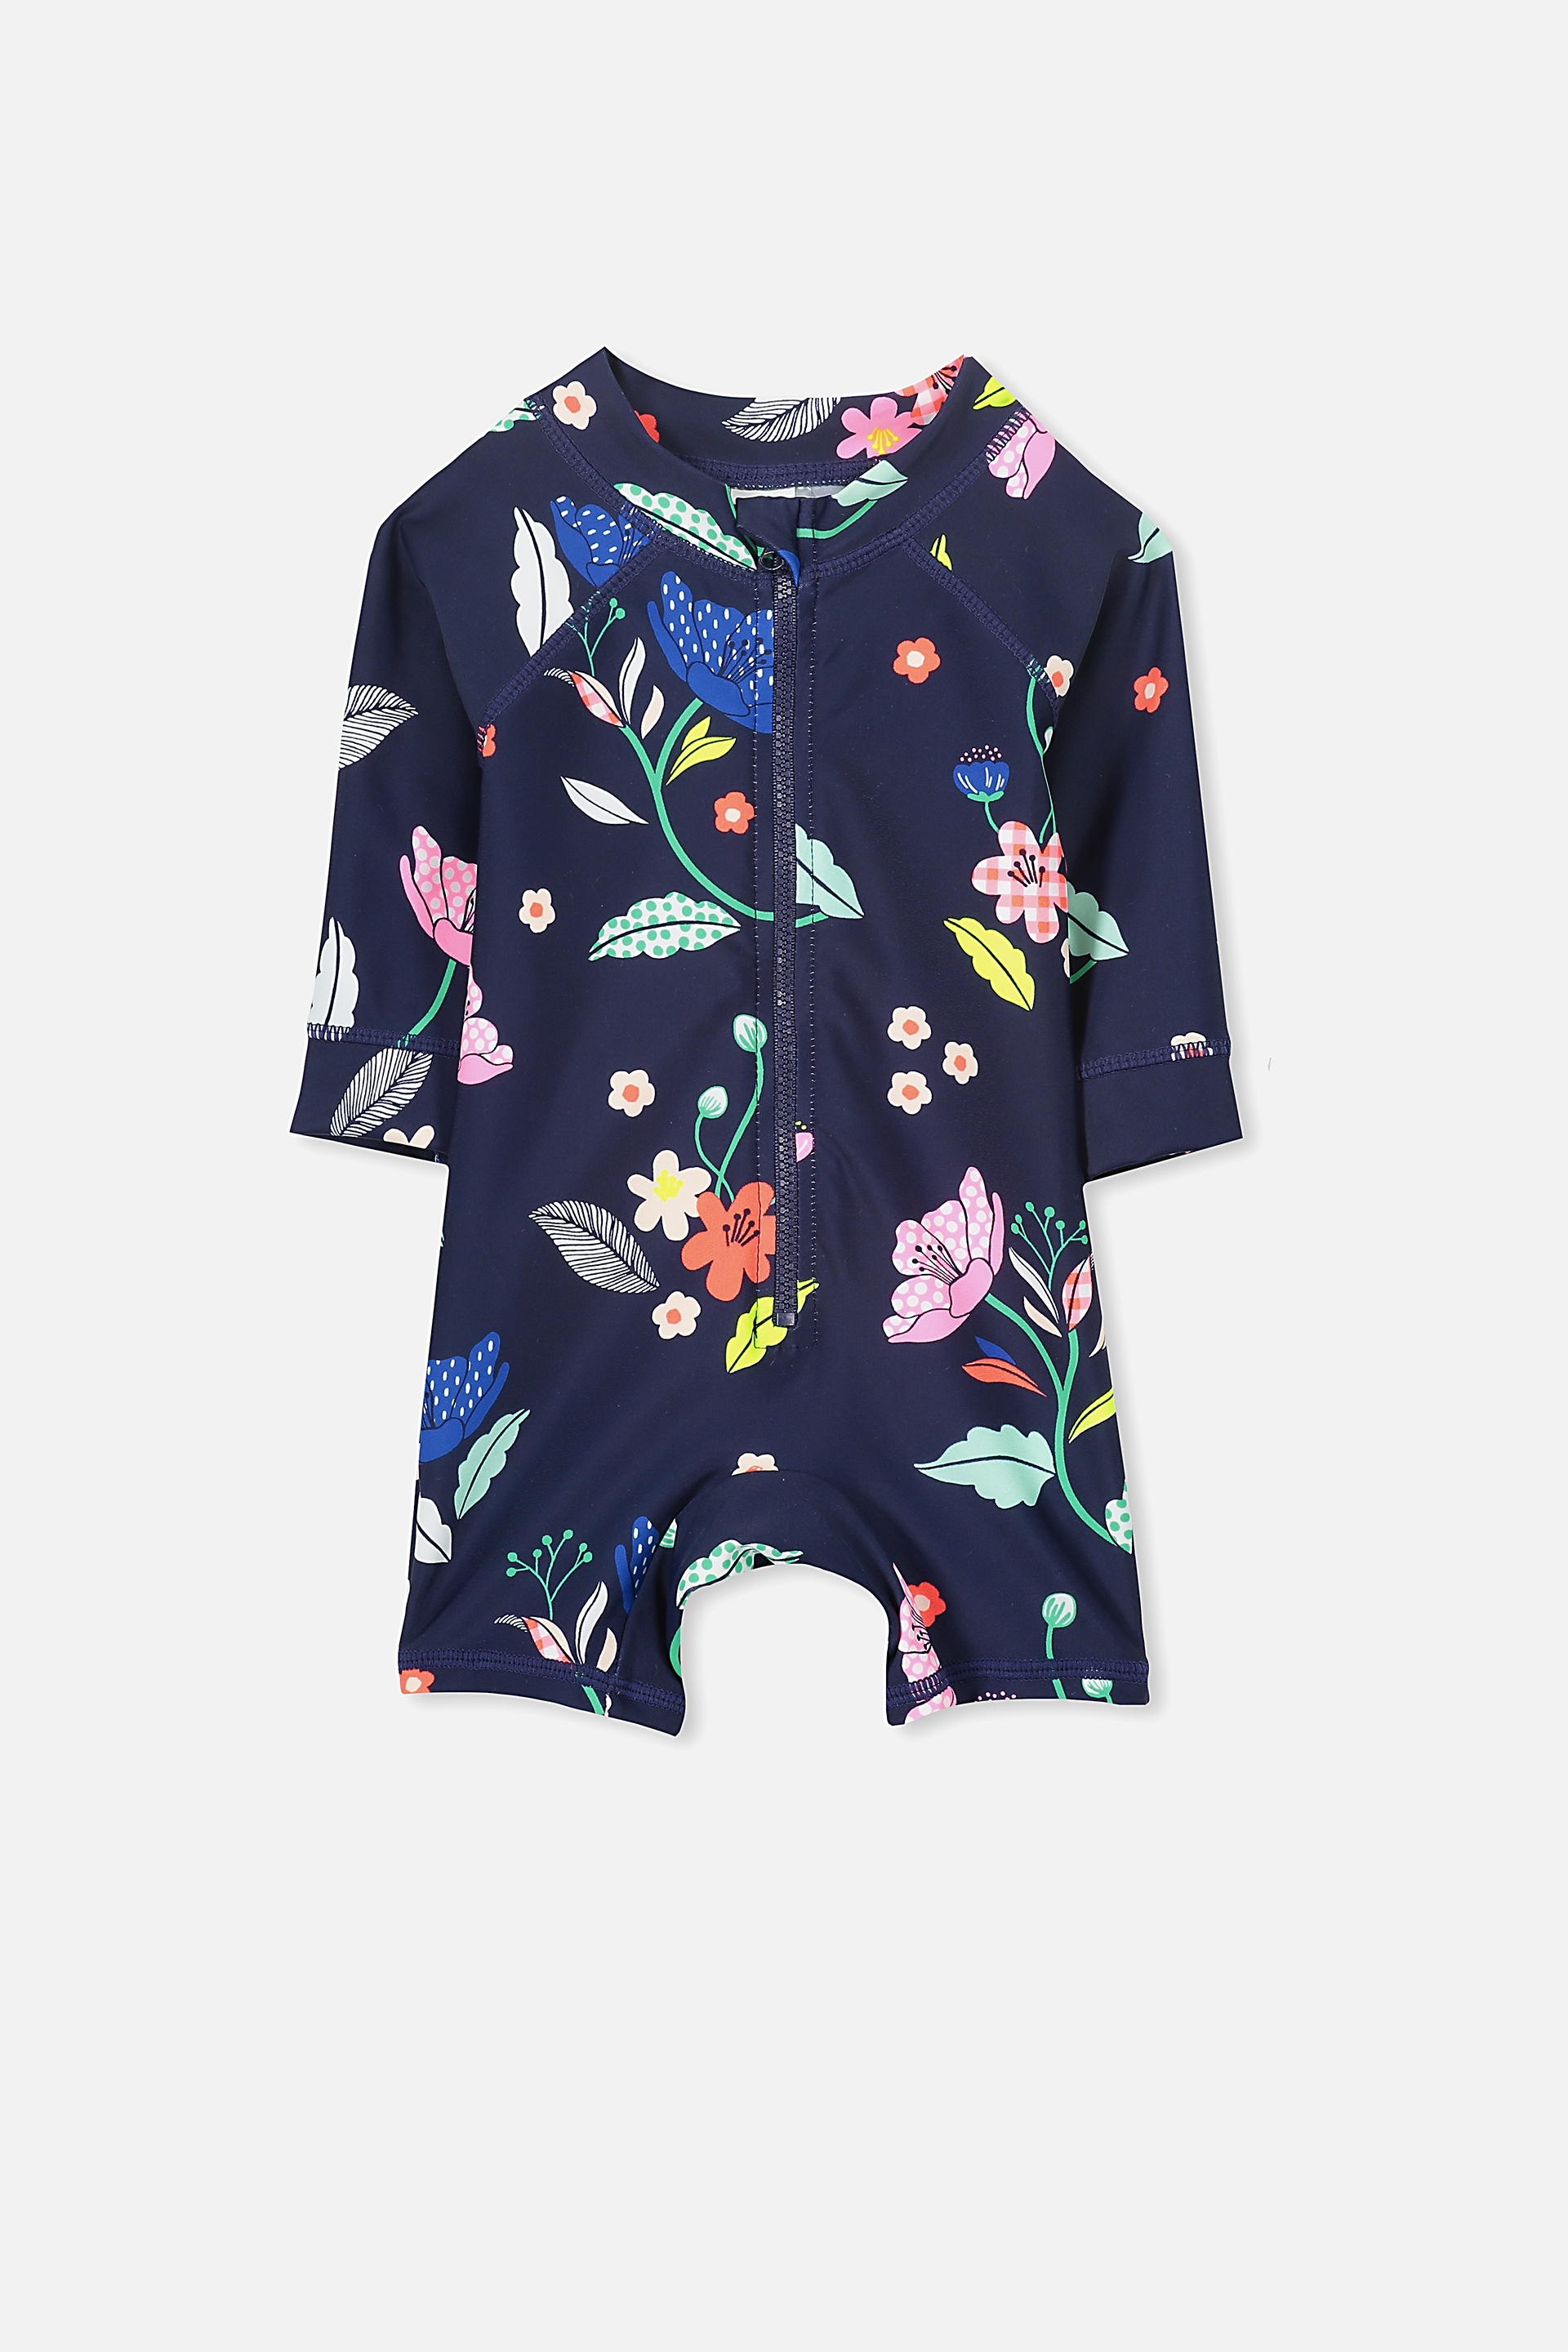 Cotton On Kids - Harris One Piece - Peacoat/bright floral 9352403313388